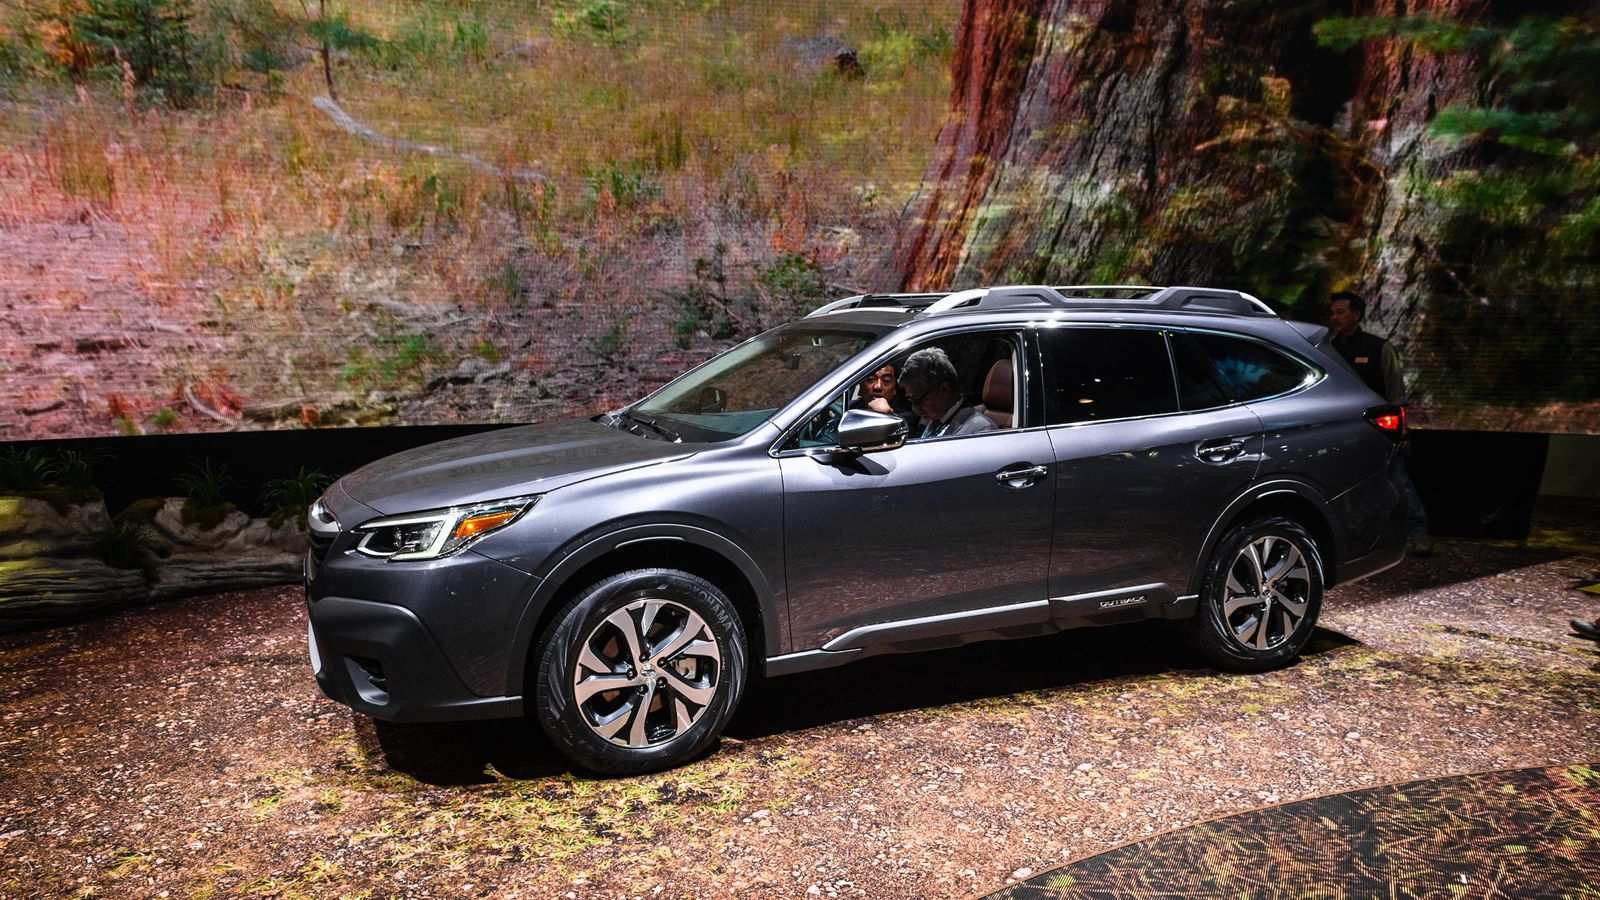 69 The 2020 Subaru Outback Photos Redesign And Review